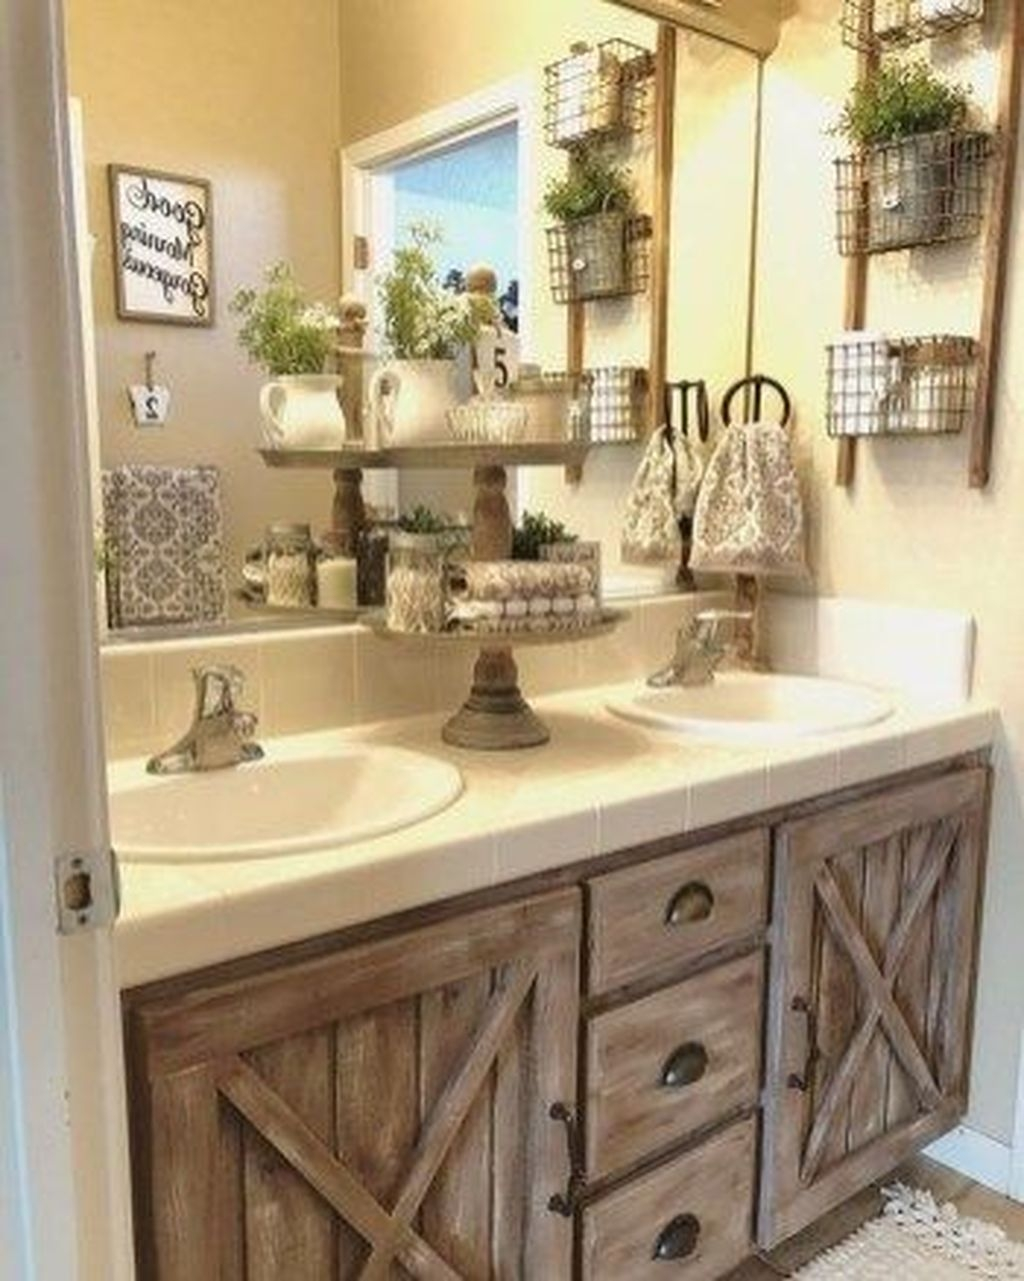 44 Affordable Farmhouse Bathroom Design Ideas - HOMYHOMEE on Farmhouse Bathroom Ideas  id=69420